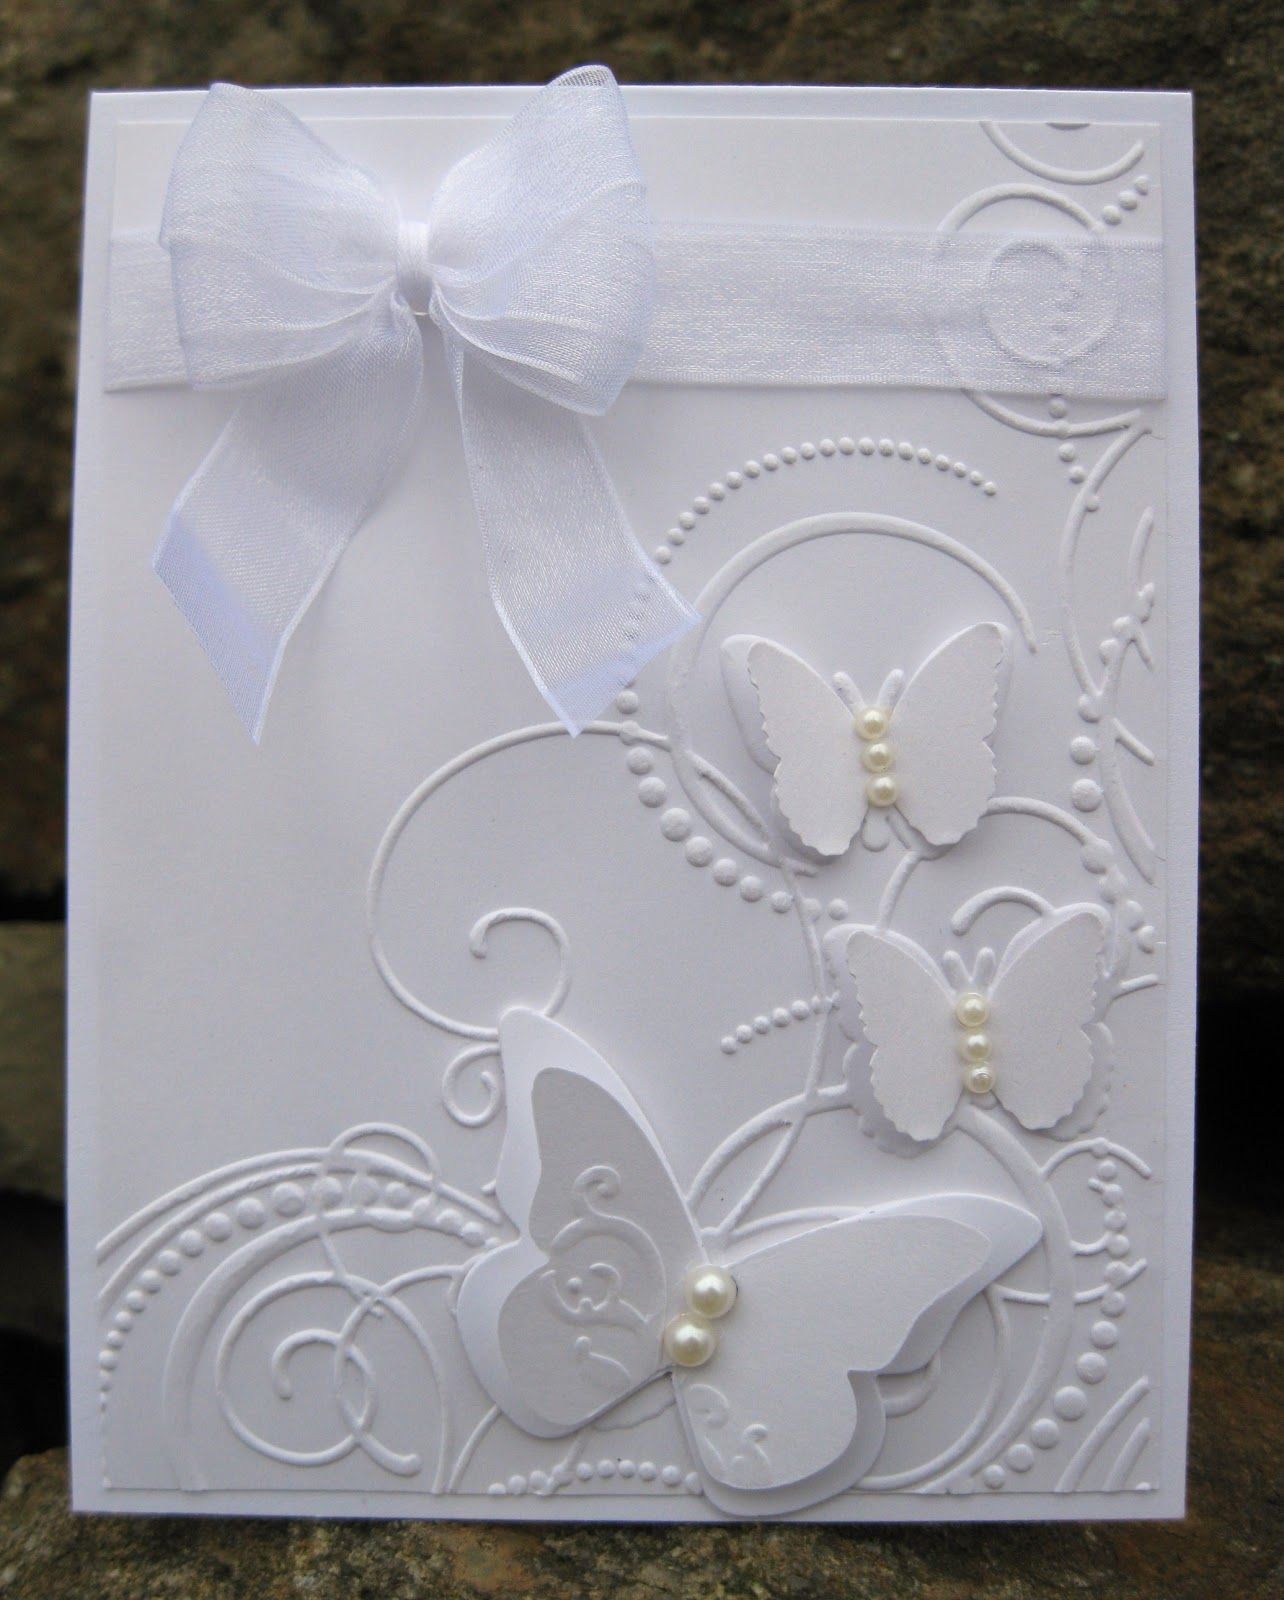 Inkee Paws White On White Card So Classy Elegant Could Be Used